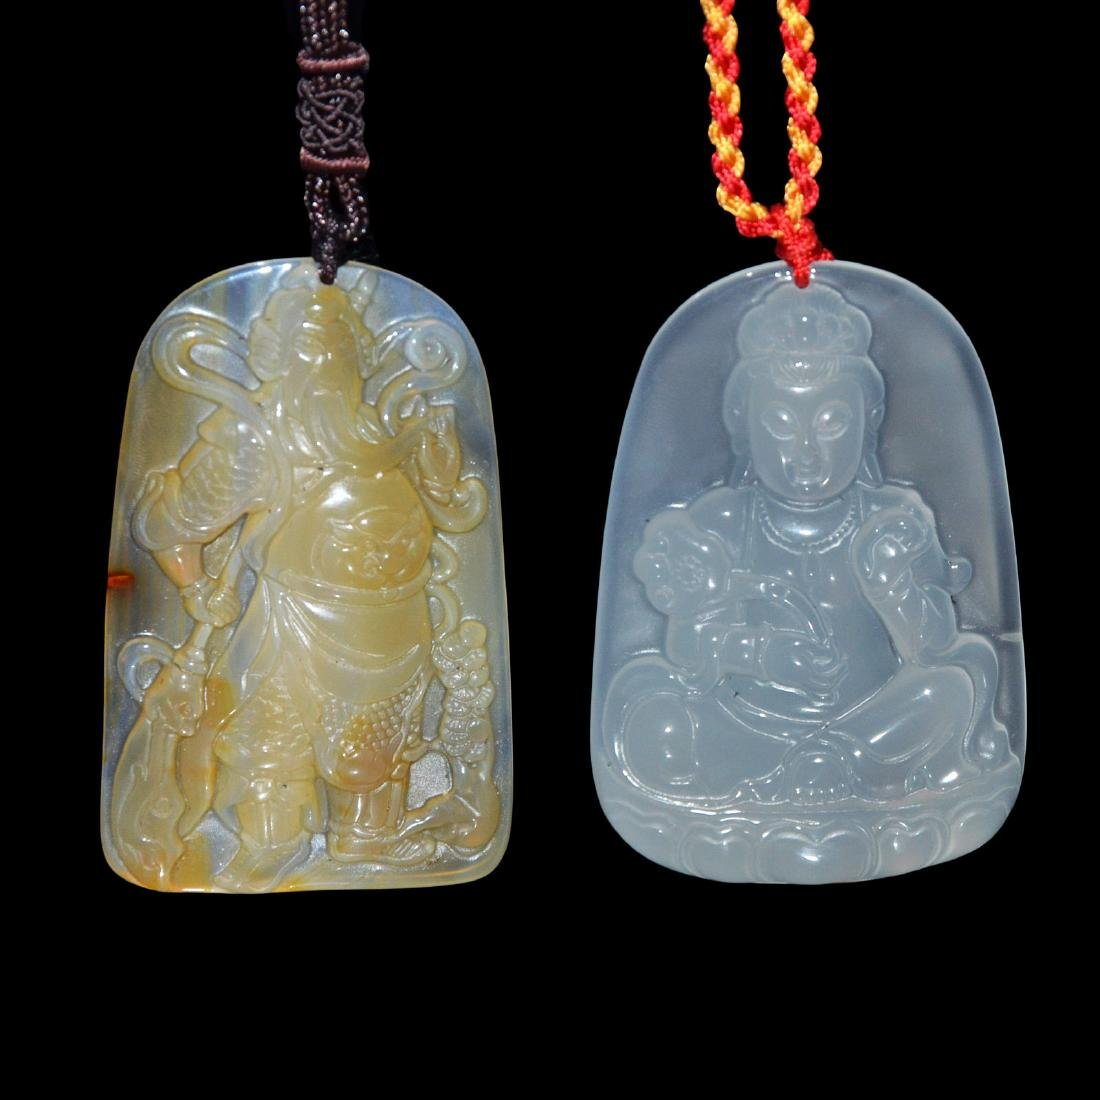 An Agate Pendant of General Guan,  An Agate Pendant of